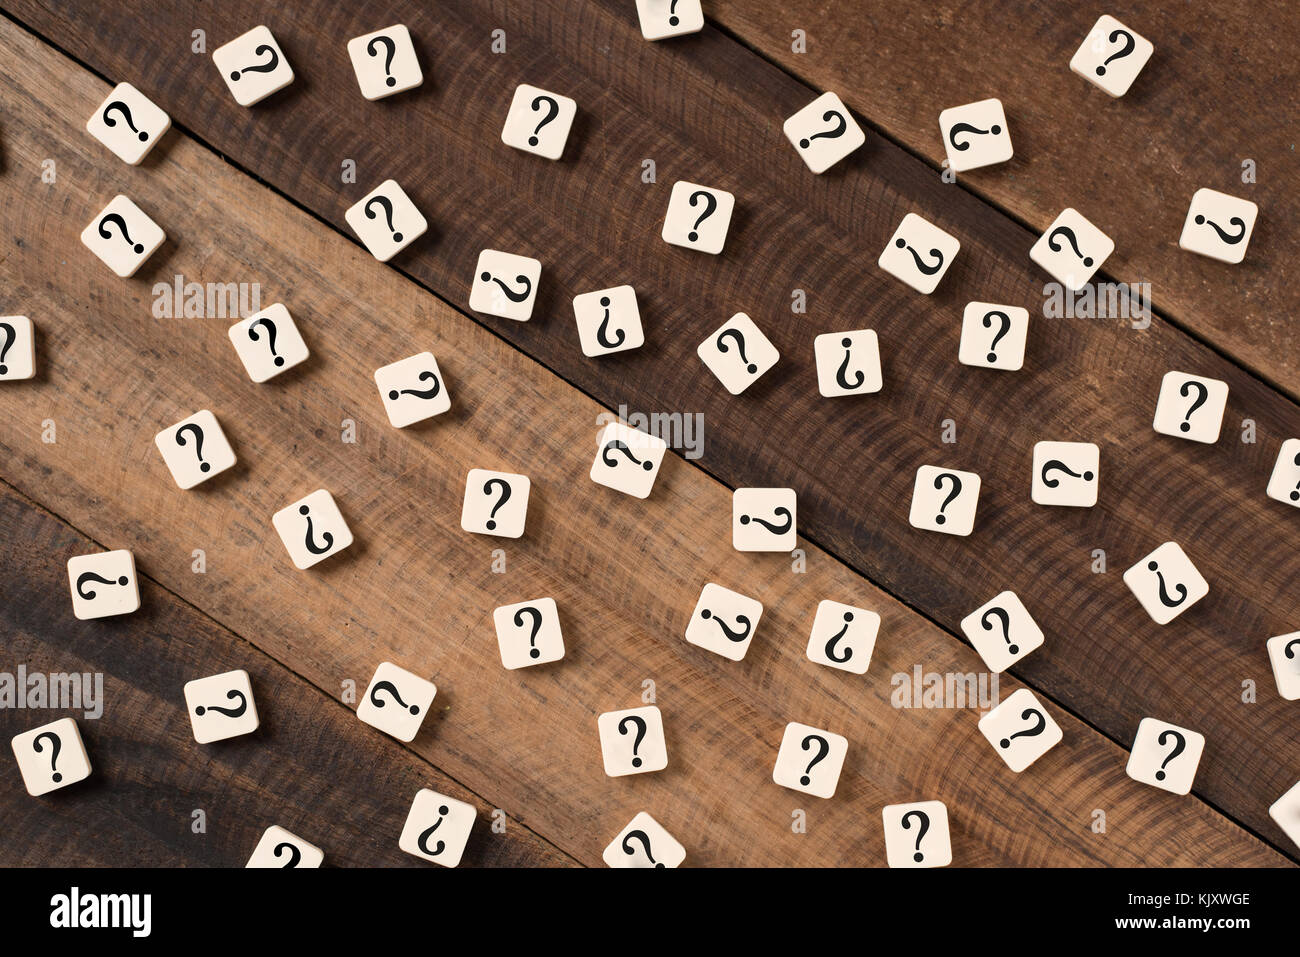 Question mark on alphabet tiles. question mark on wooden table background - Stock Image